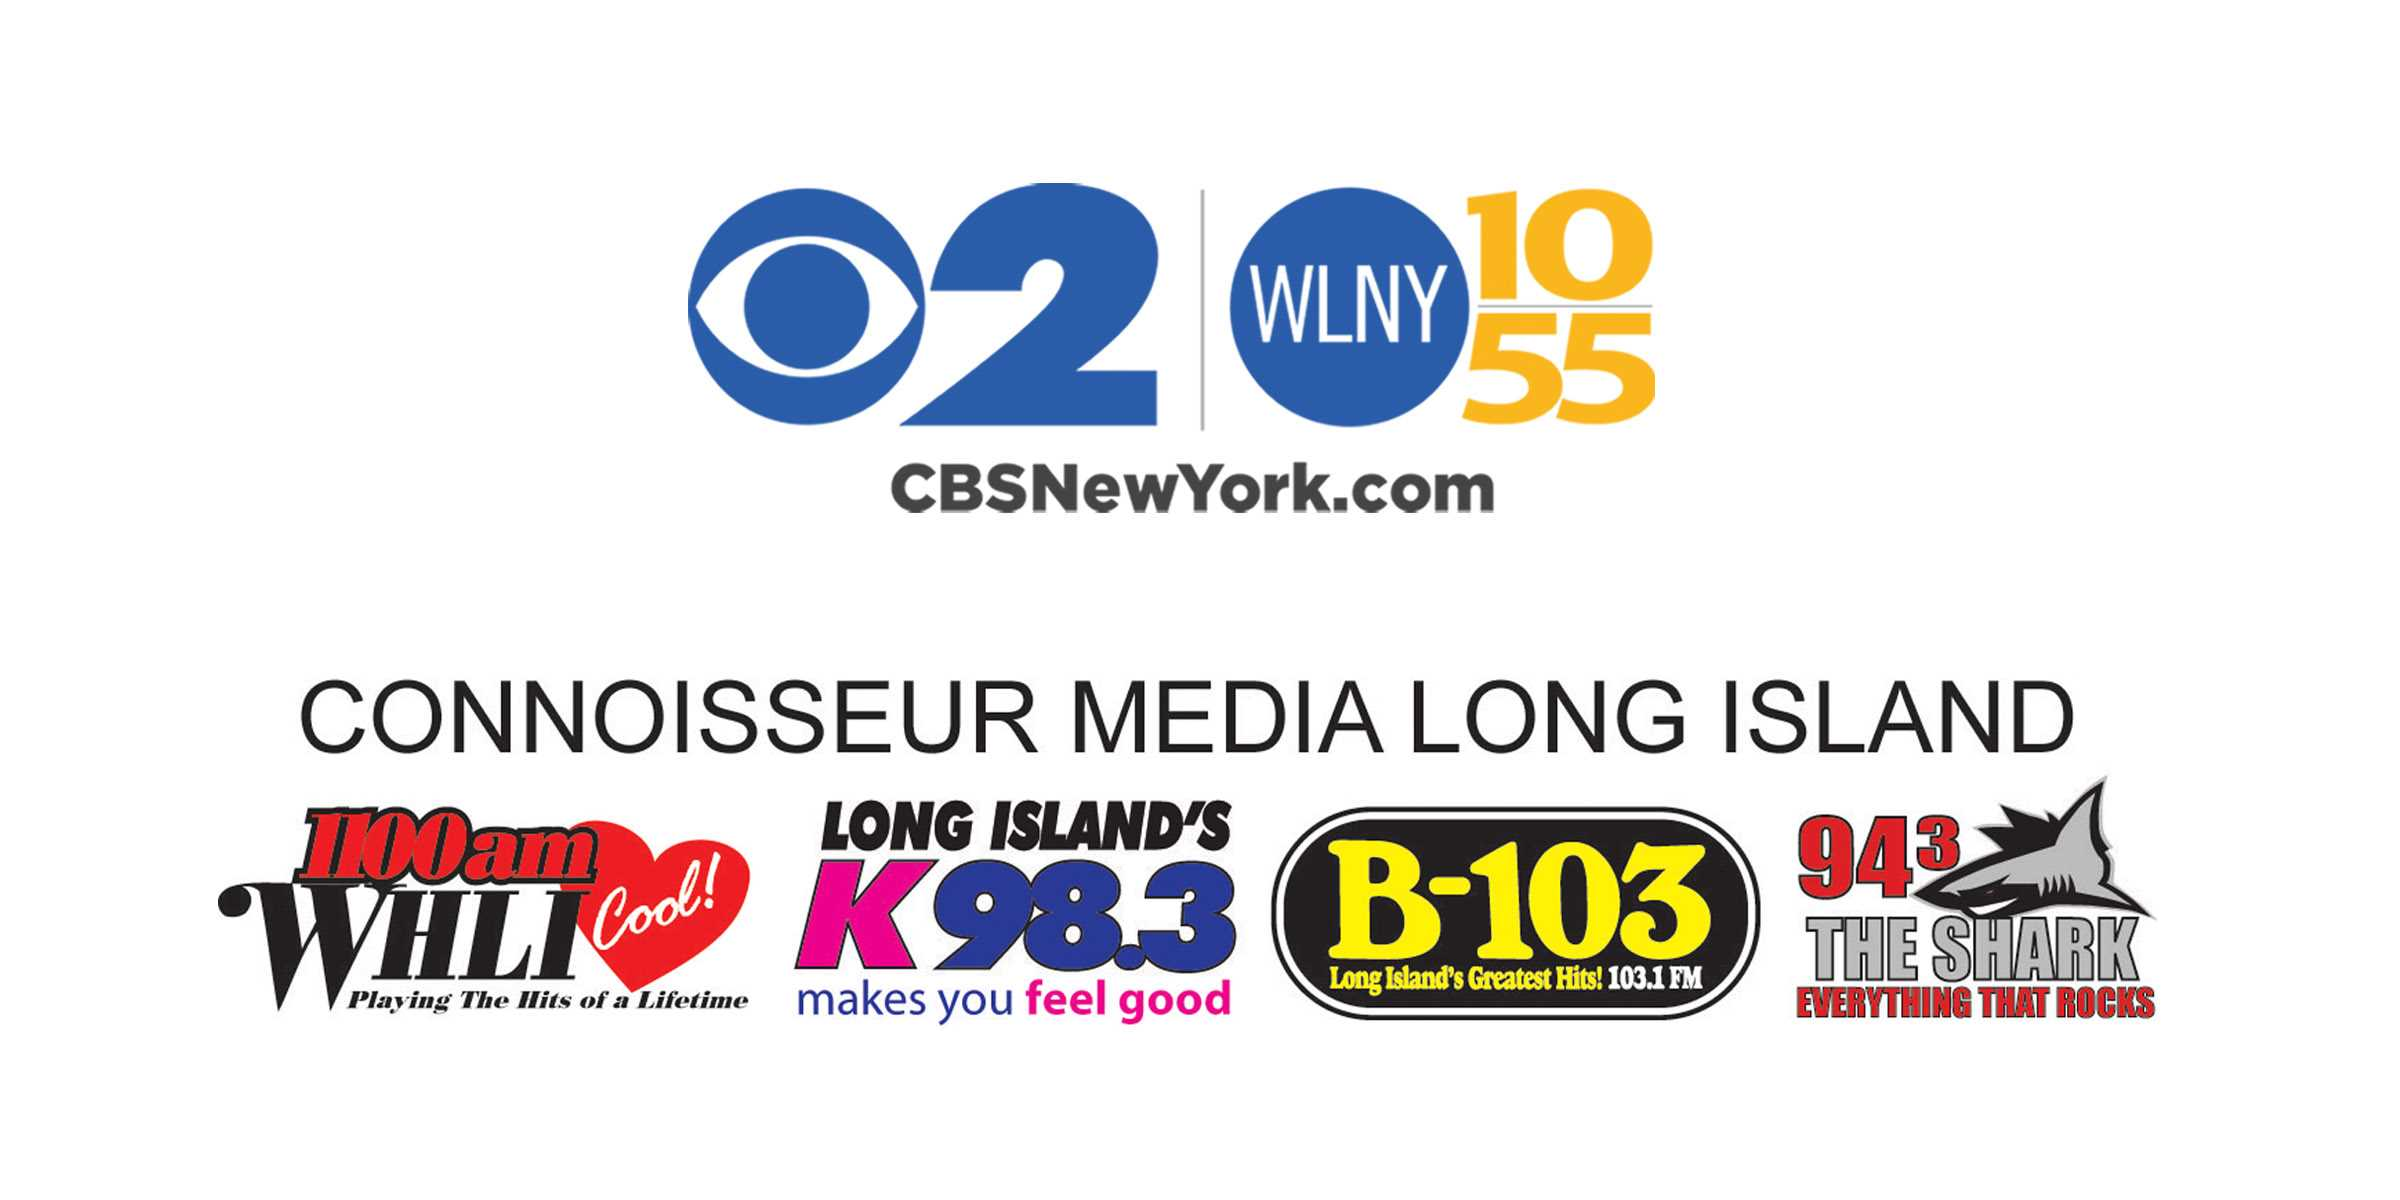 CBS 2 - 10/55 WLNY - Connoisseur Media